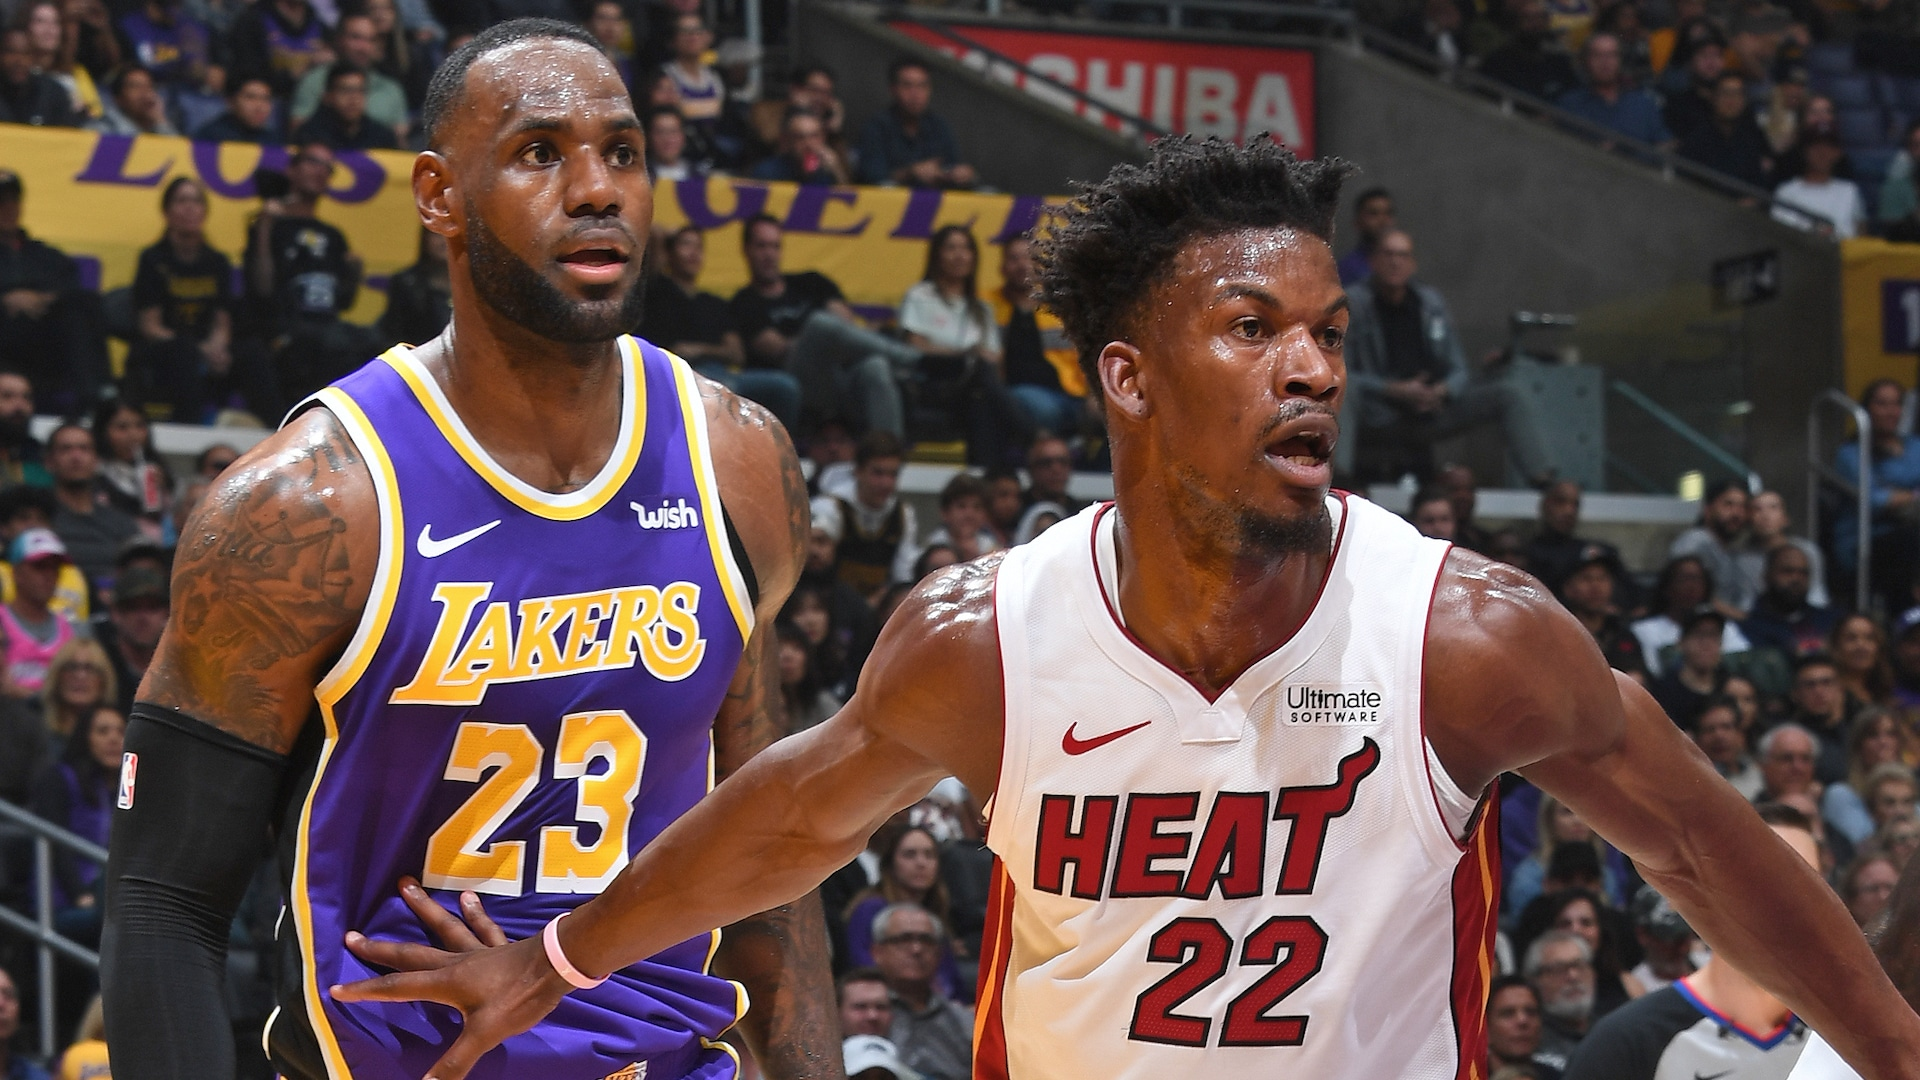 Lakers, Heat get started with their Finals preparations